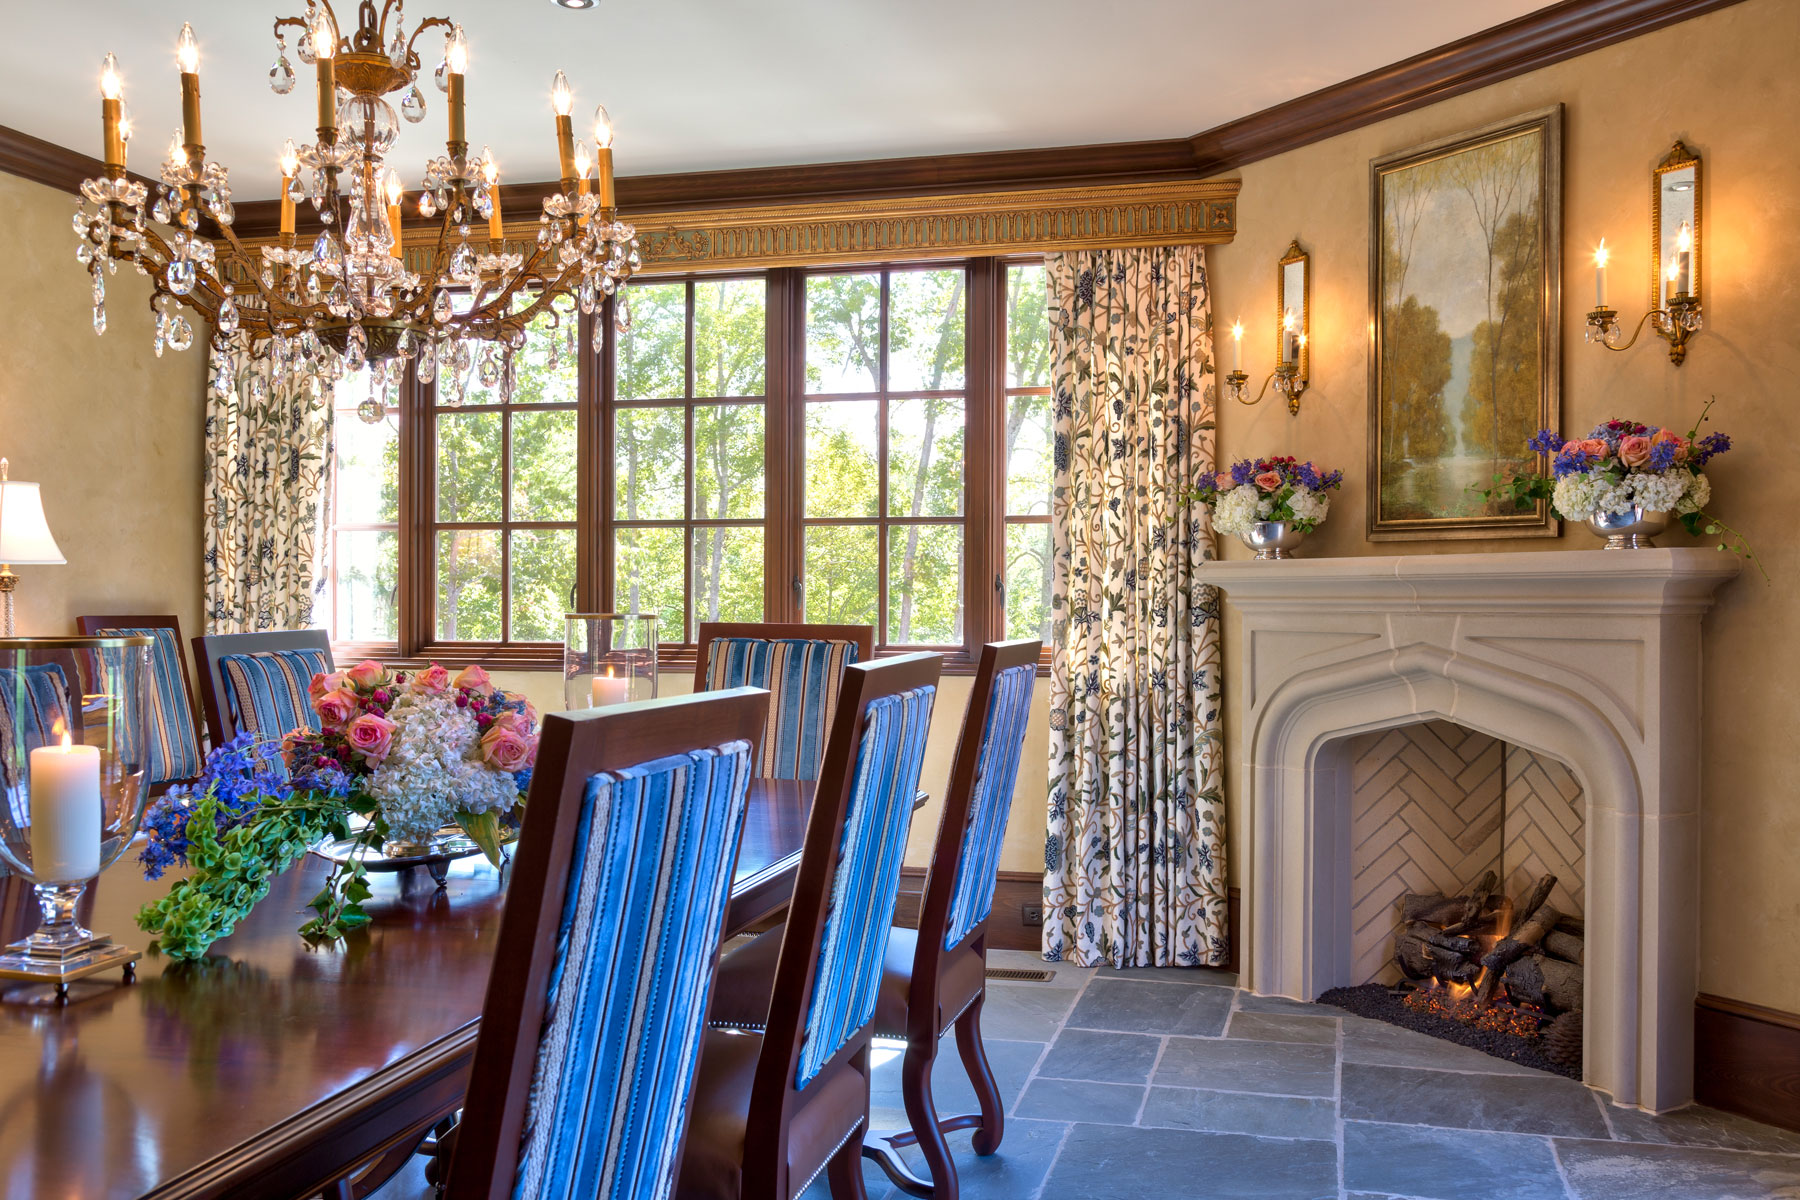 dining-room-with-fireplace-stone-floors